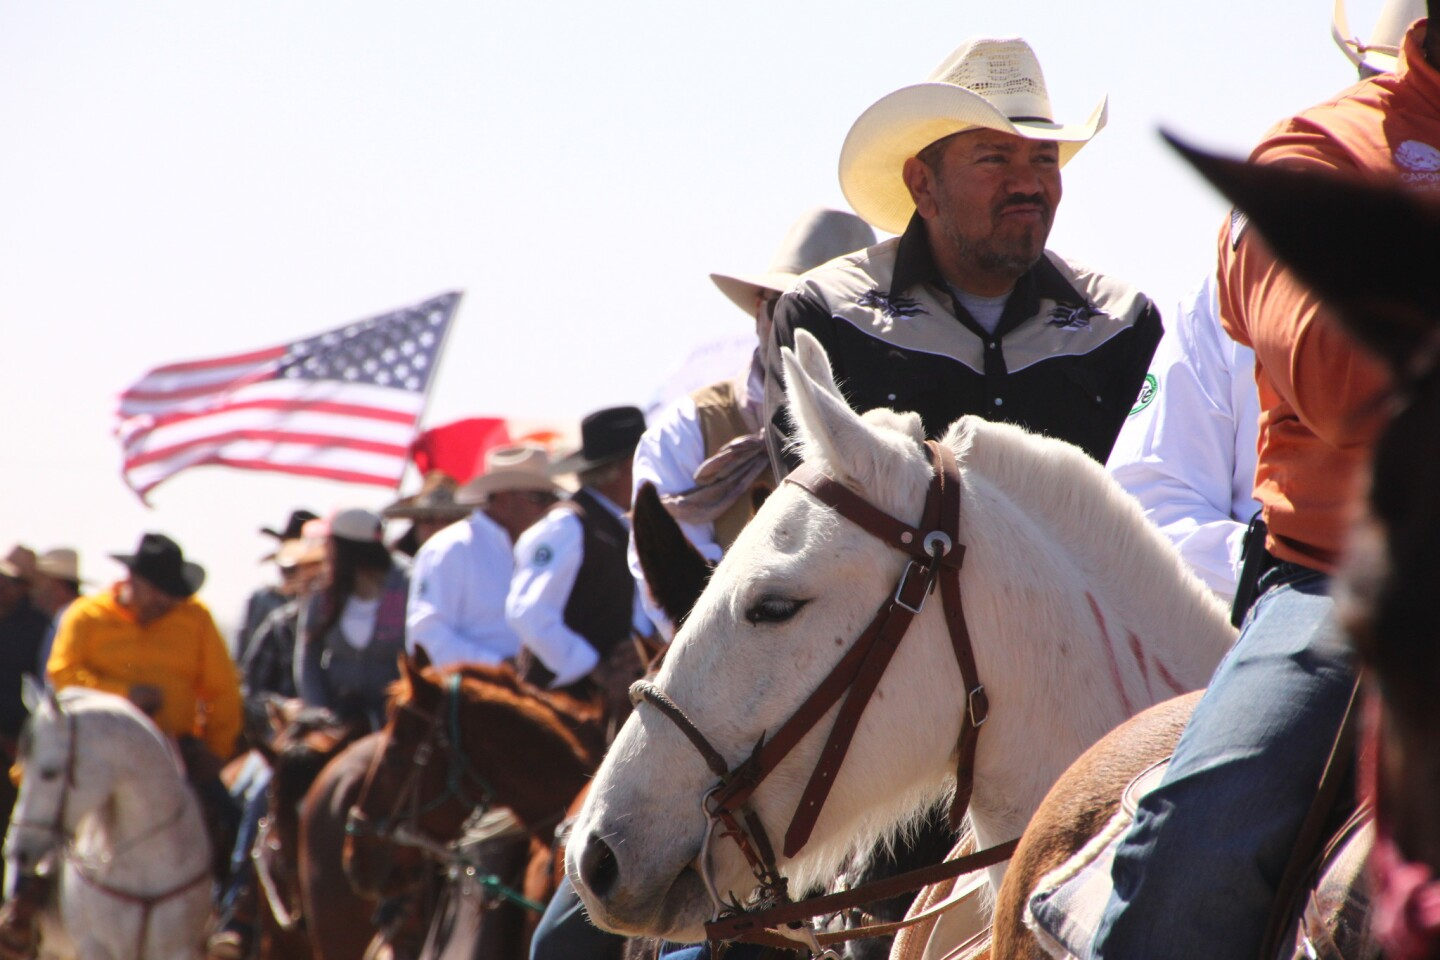 In the Cabalgata Binacional, riders from Mexico and the U.S. gather at the border and ride three miles together into Columbus, N.M.